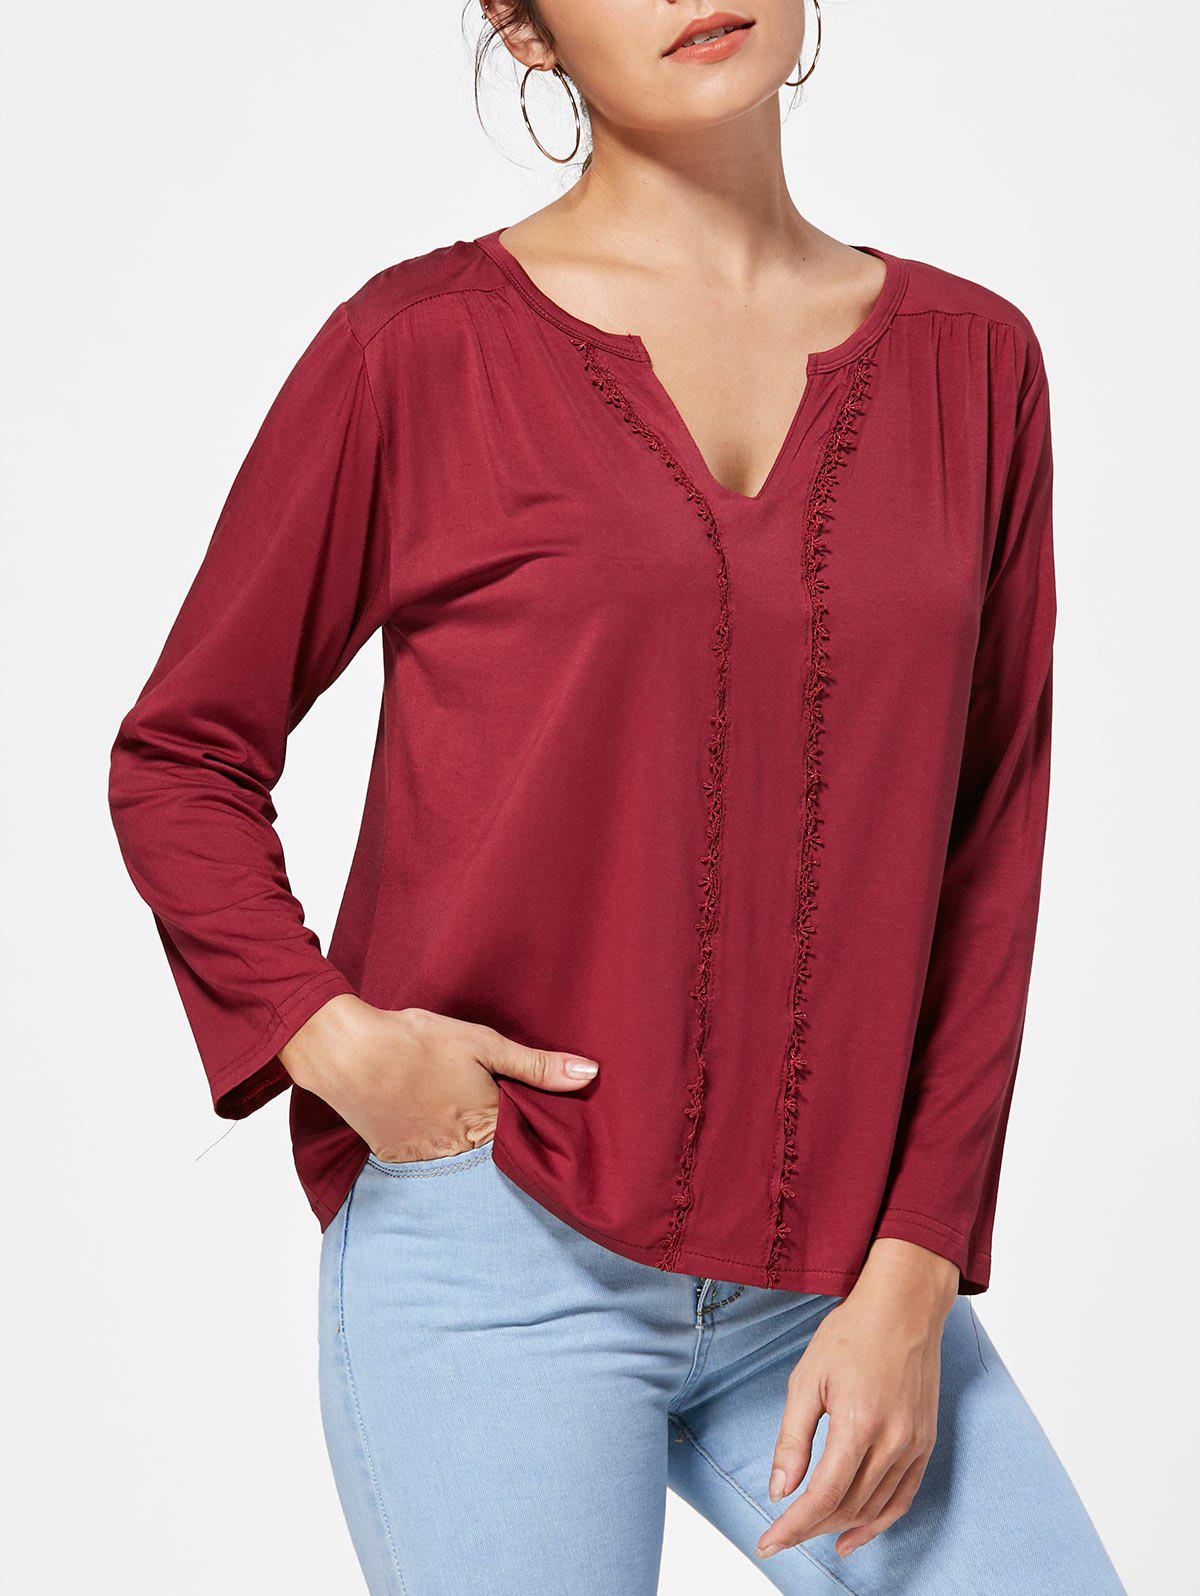 Chic Cut Out Lace Trim V Neck Tee